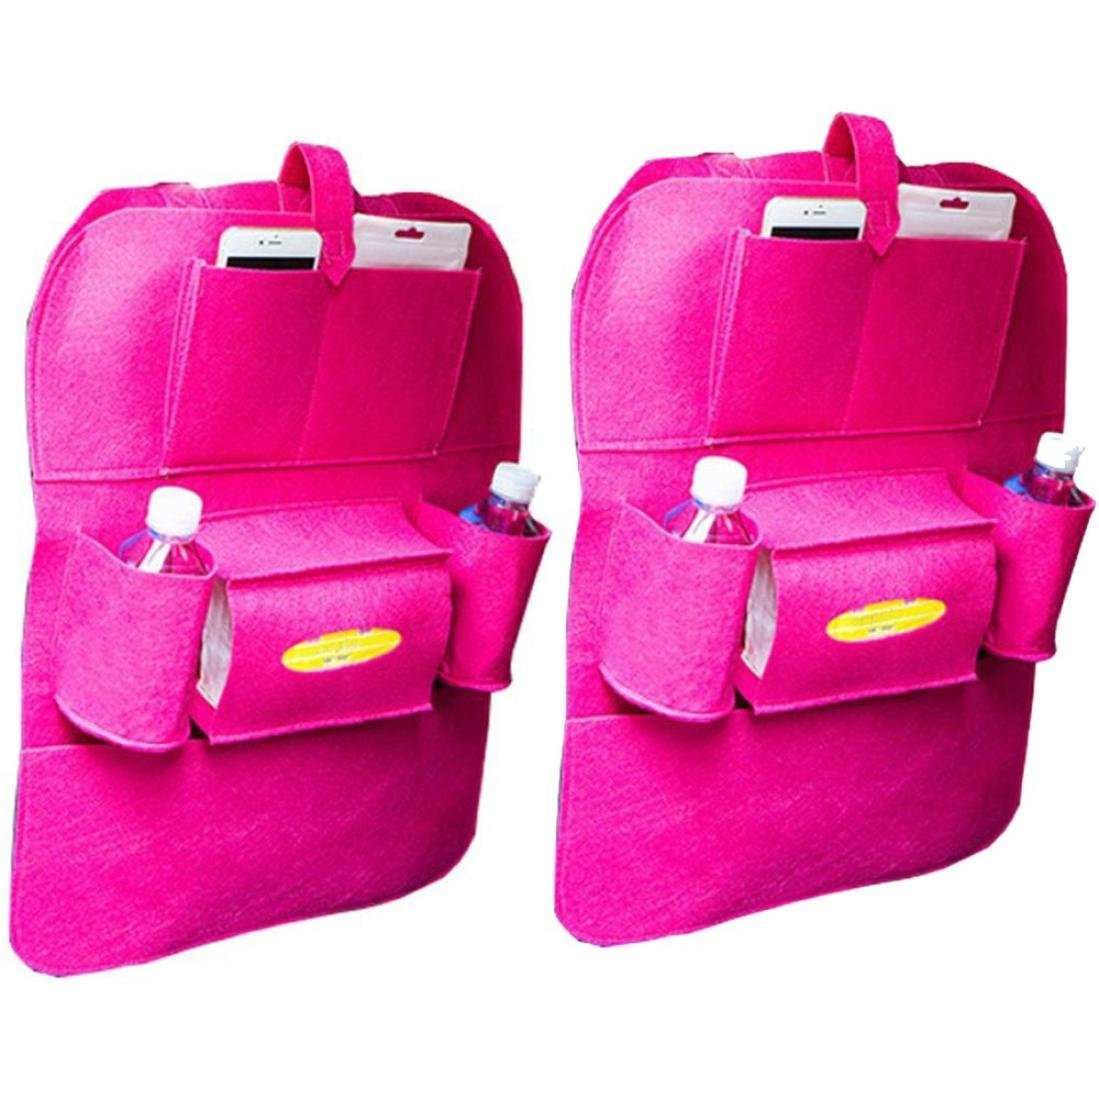 Cinhent Bag 2 PCS New Car Auto Seat Back Multi-Pocket Storage Bag, Waterproof Fabrics Organizer Holder Hanger Pouch, Lightweight & Large Capacity & Portable, Approx 56 CM, (Hot Pink)